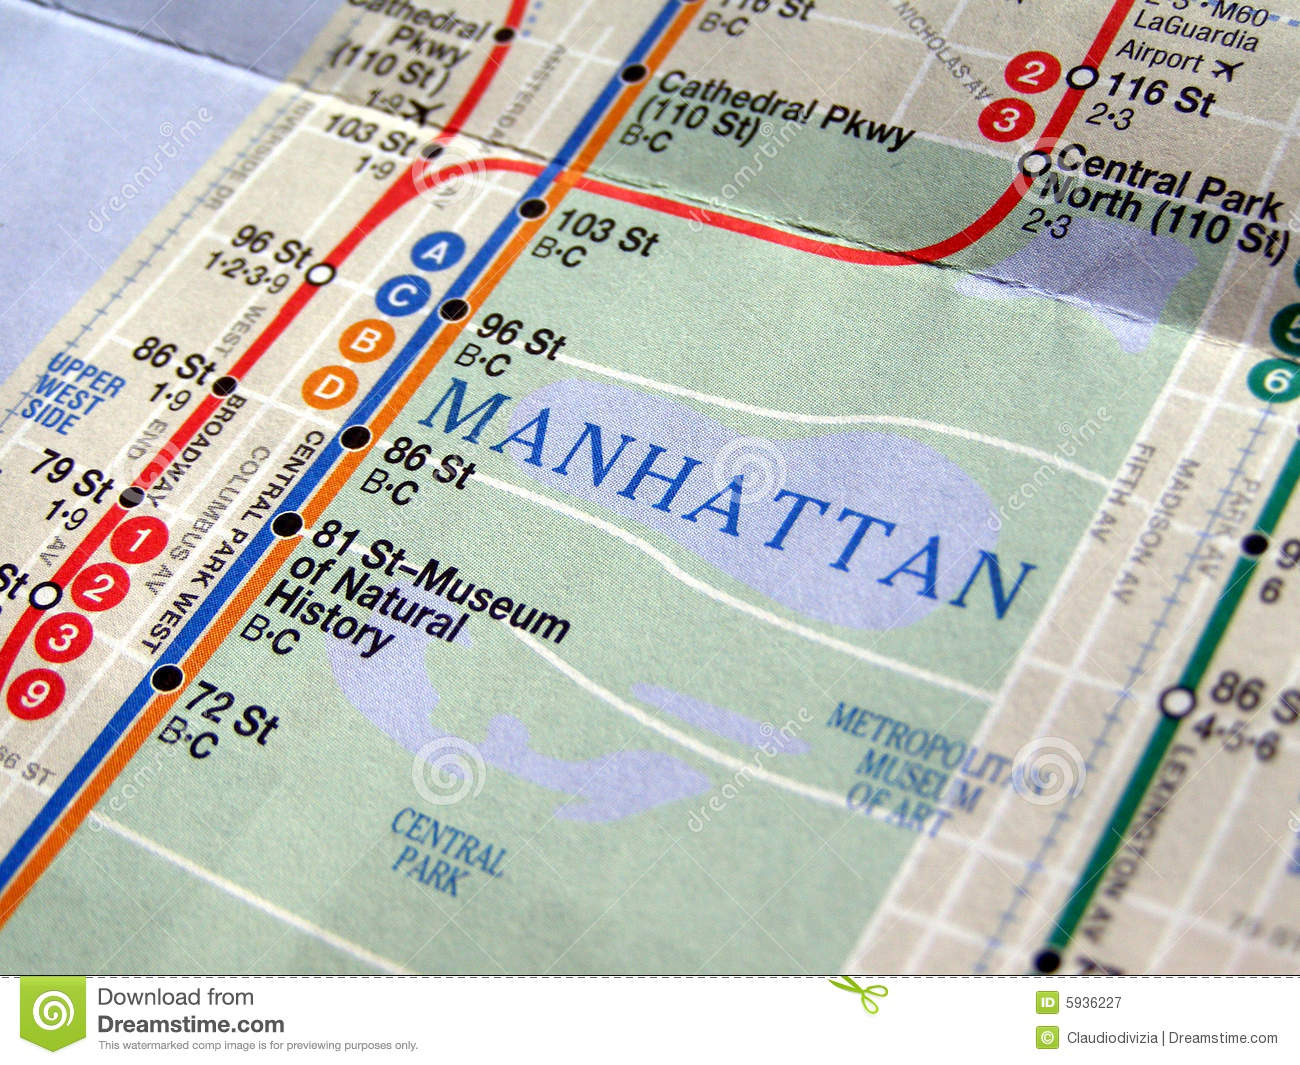 New York subway map stock image. Image of stations, tube - 5936227